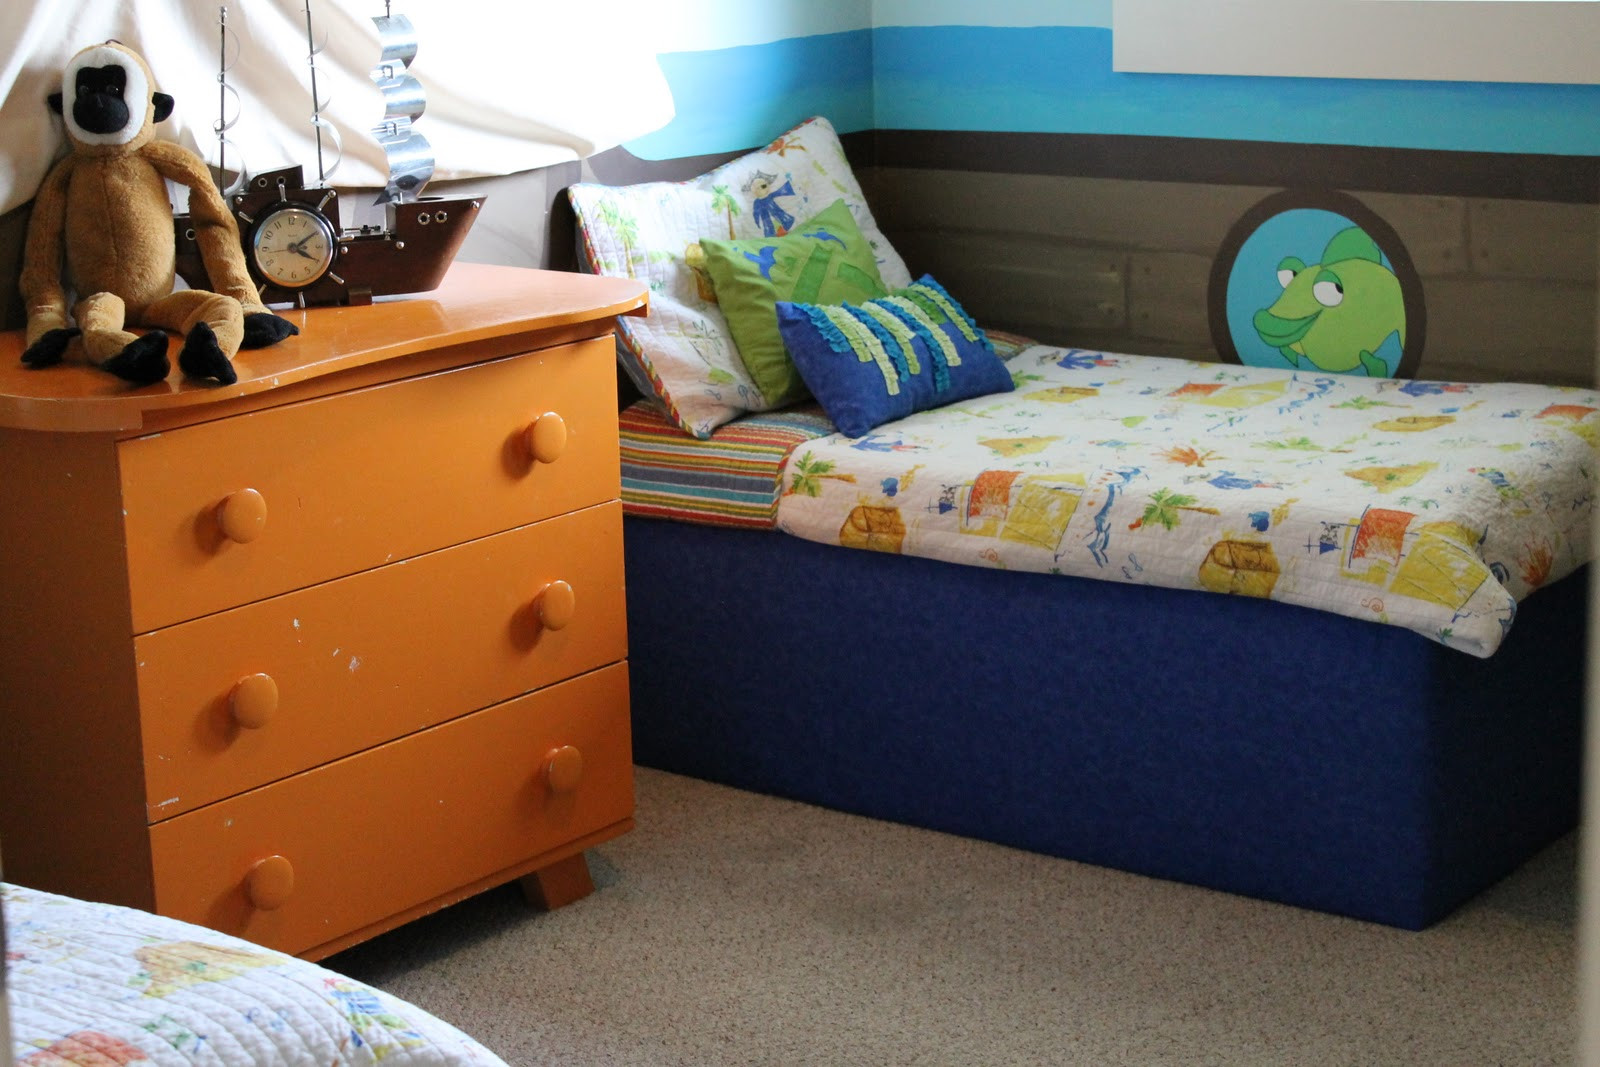 Best ideas about DIY Kids Furniture . Save or Pin 10 Cool DIY Kids Beds Now.